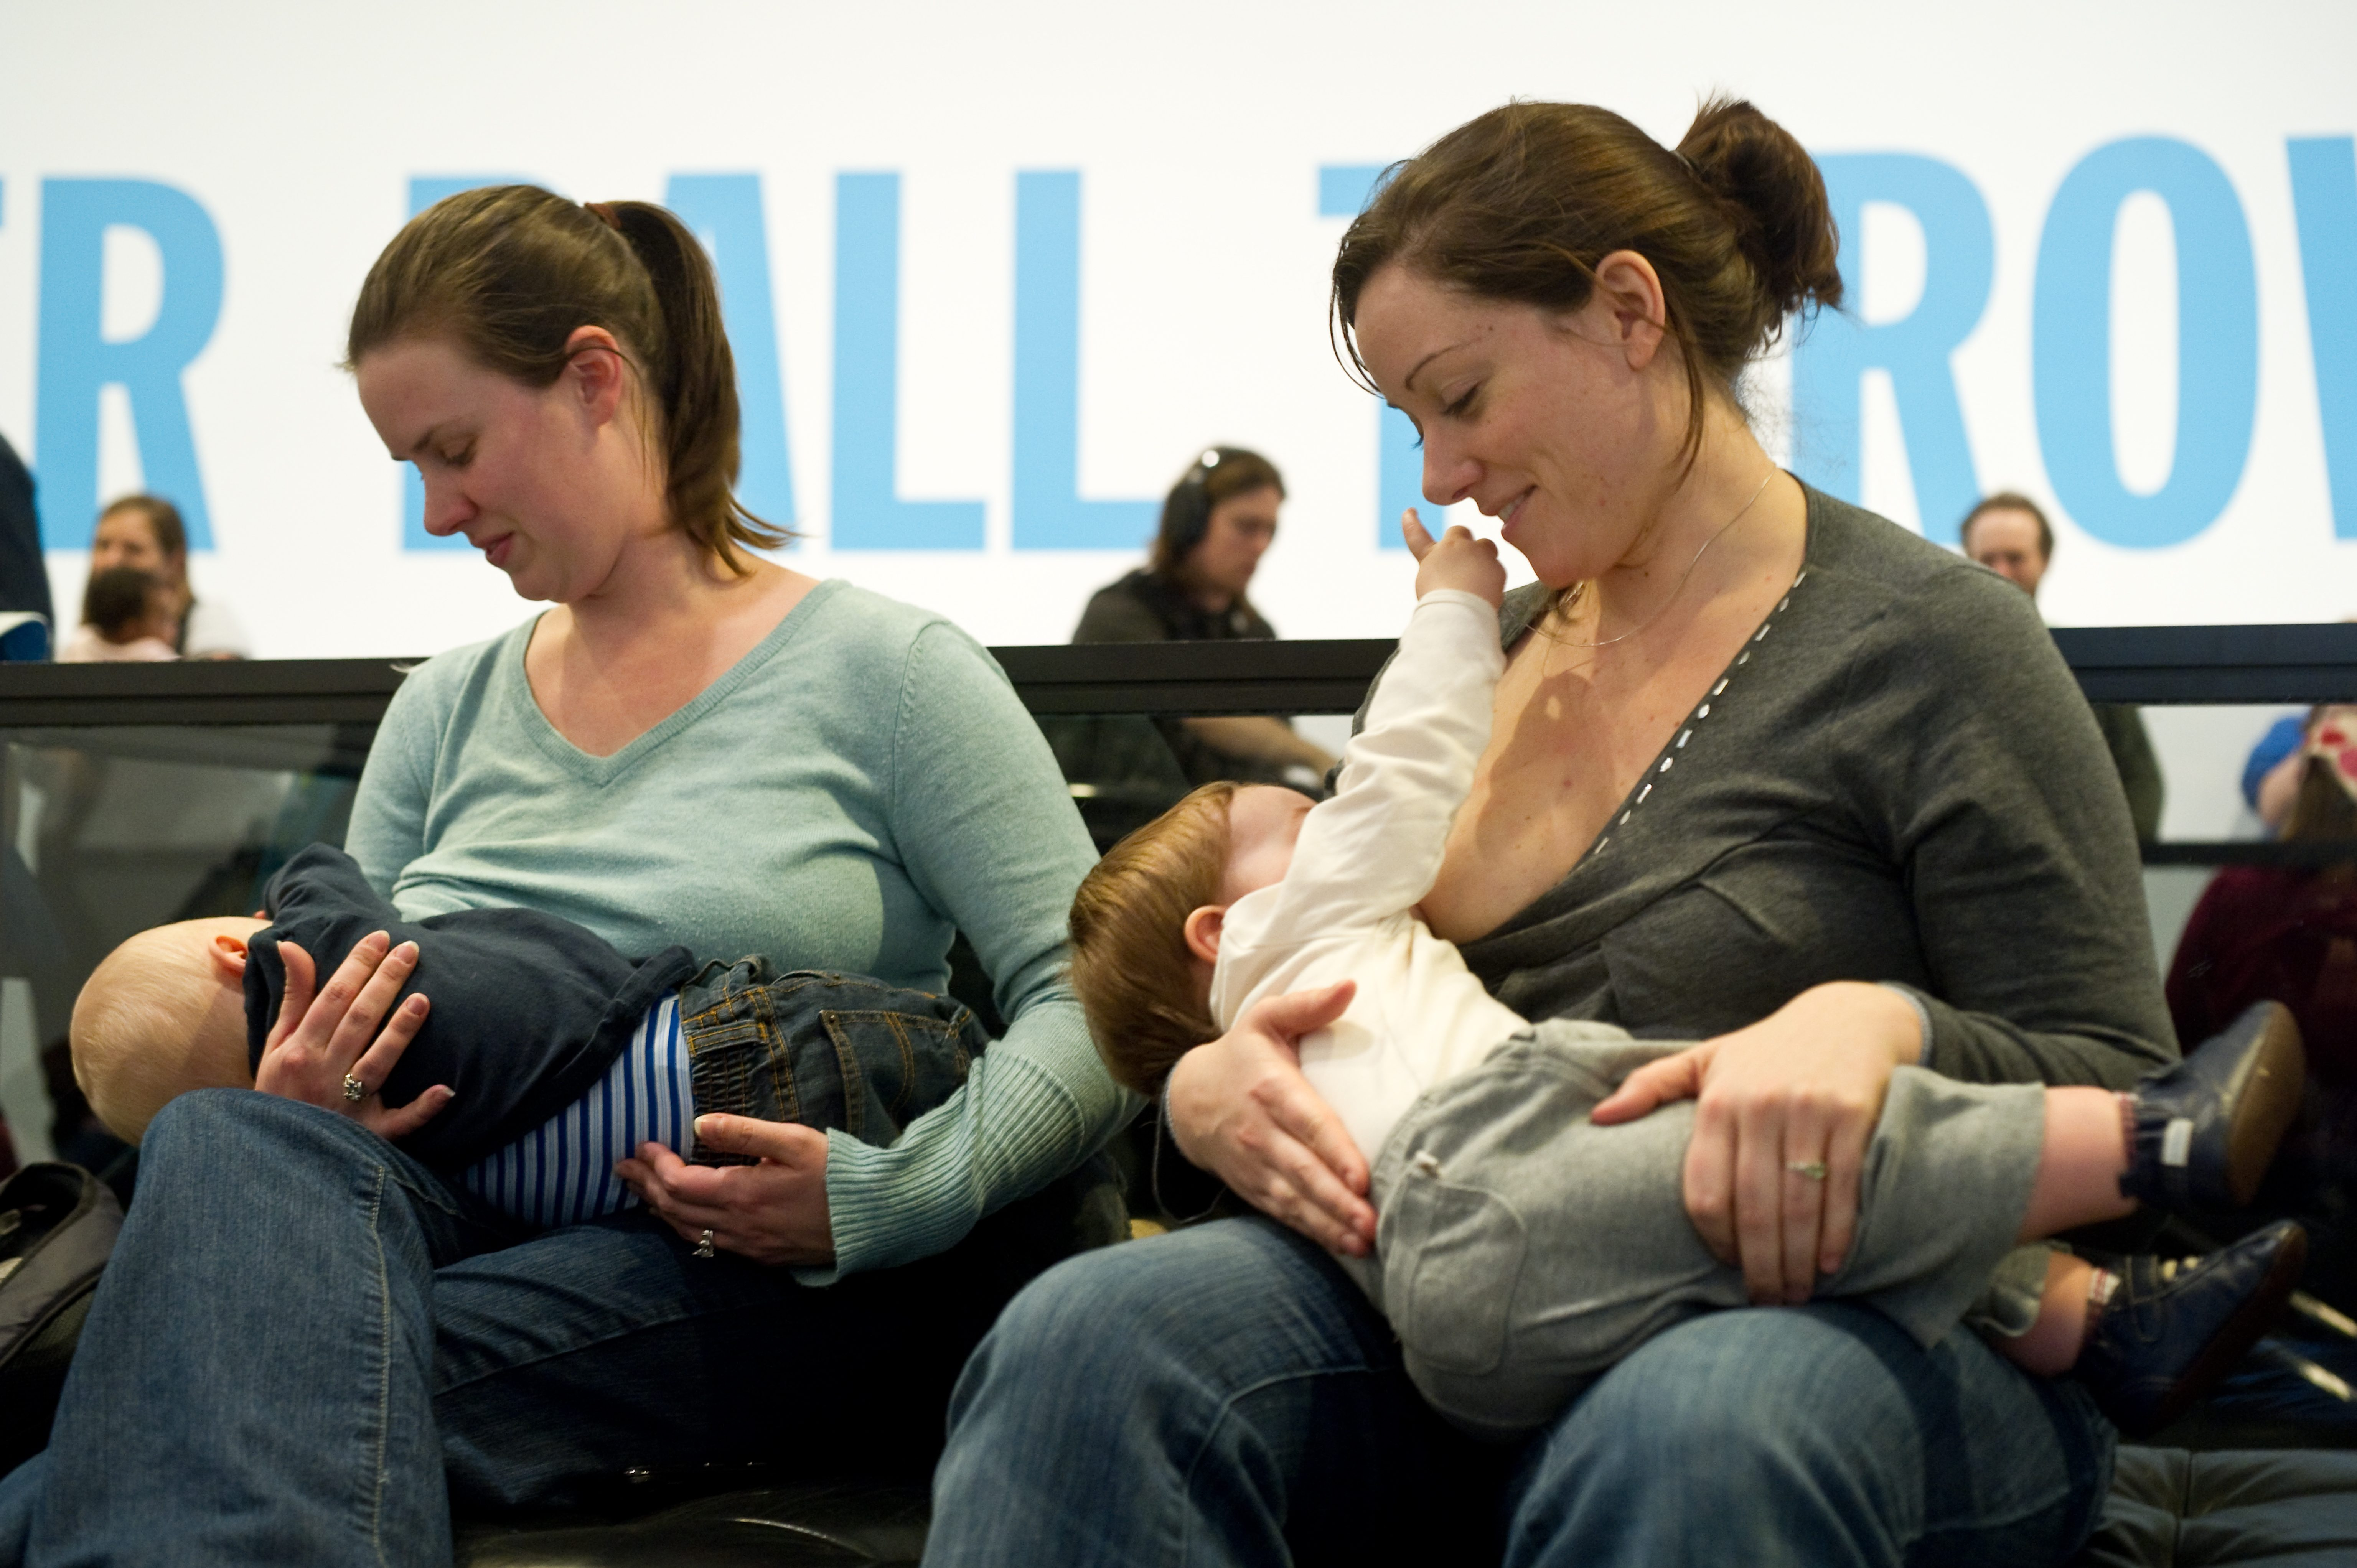 Women breastfeed their babies at the Hir